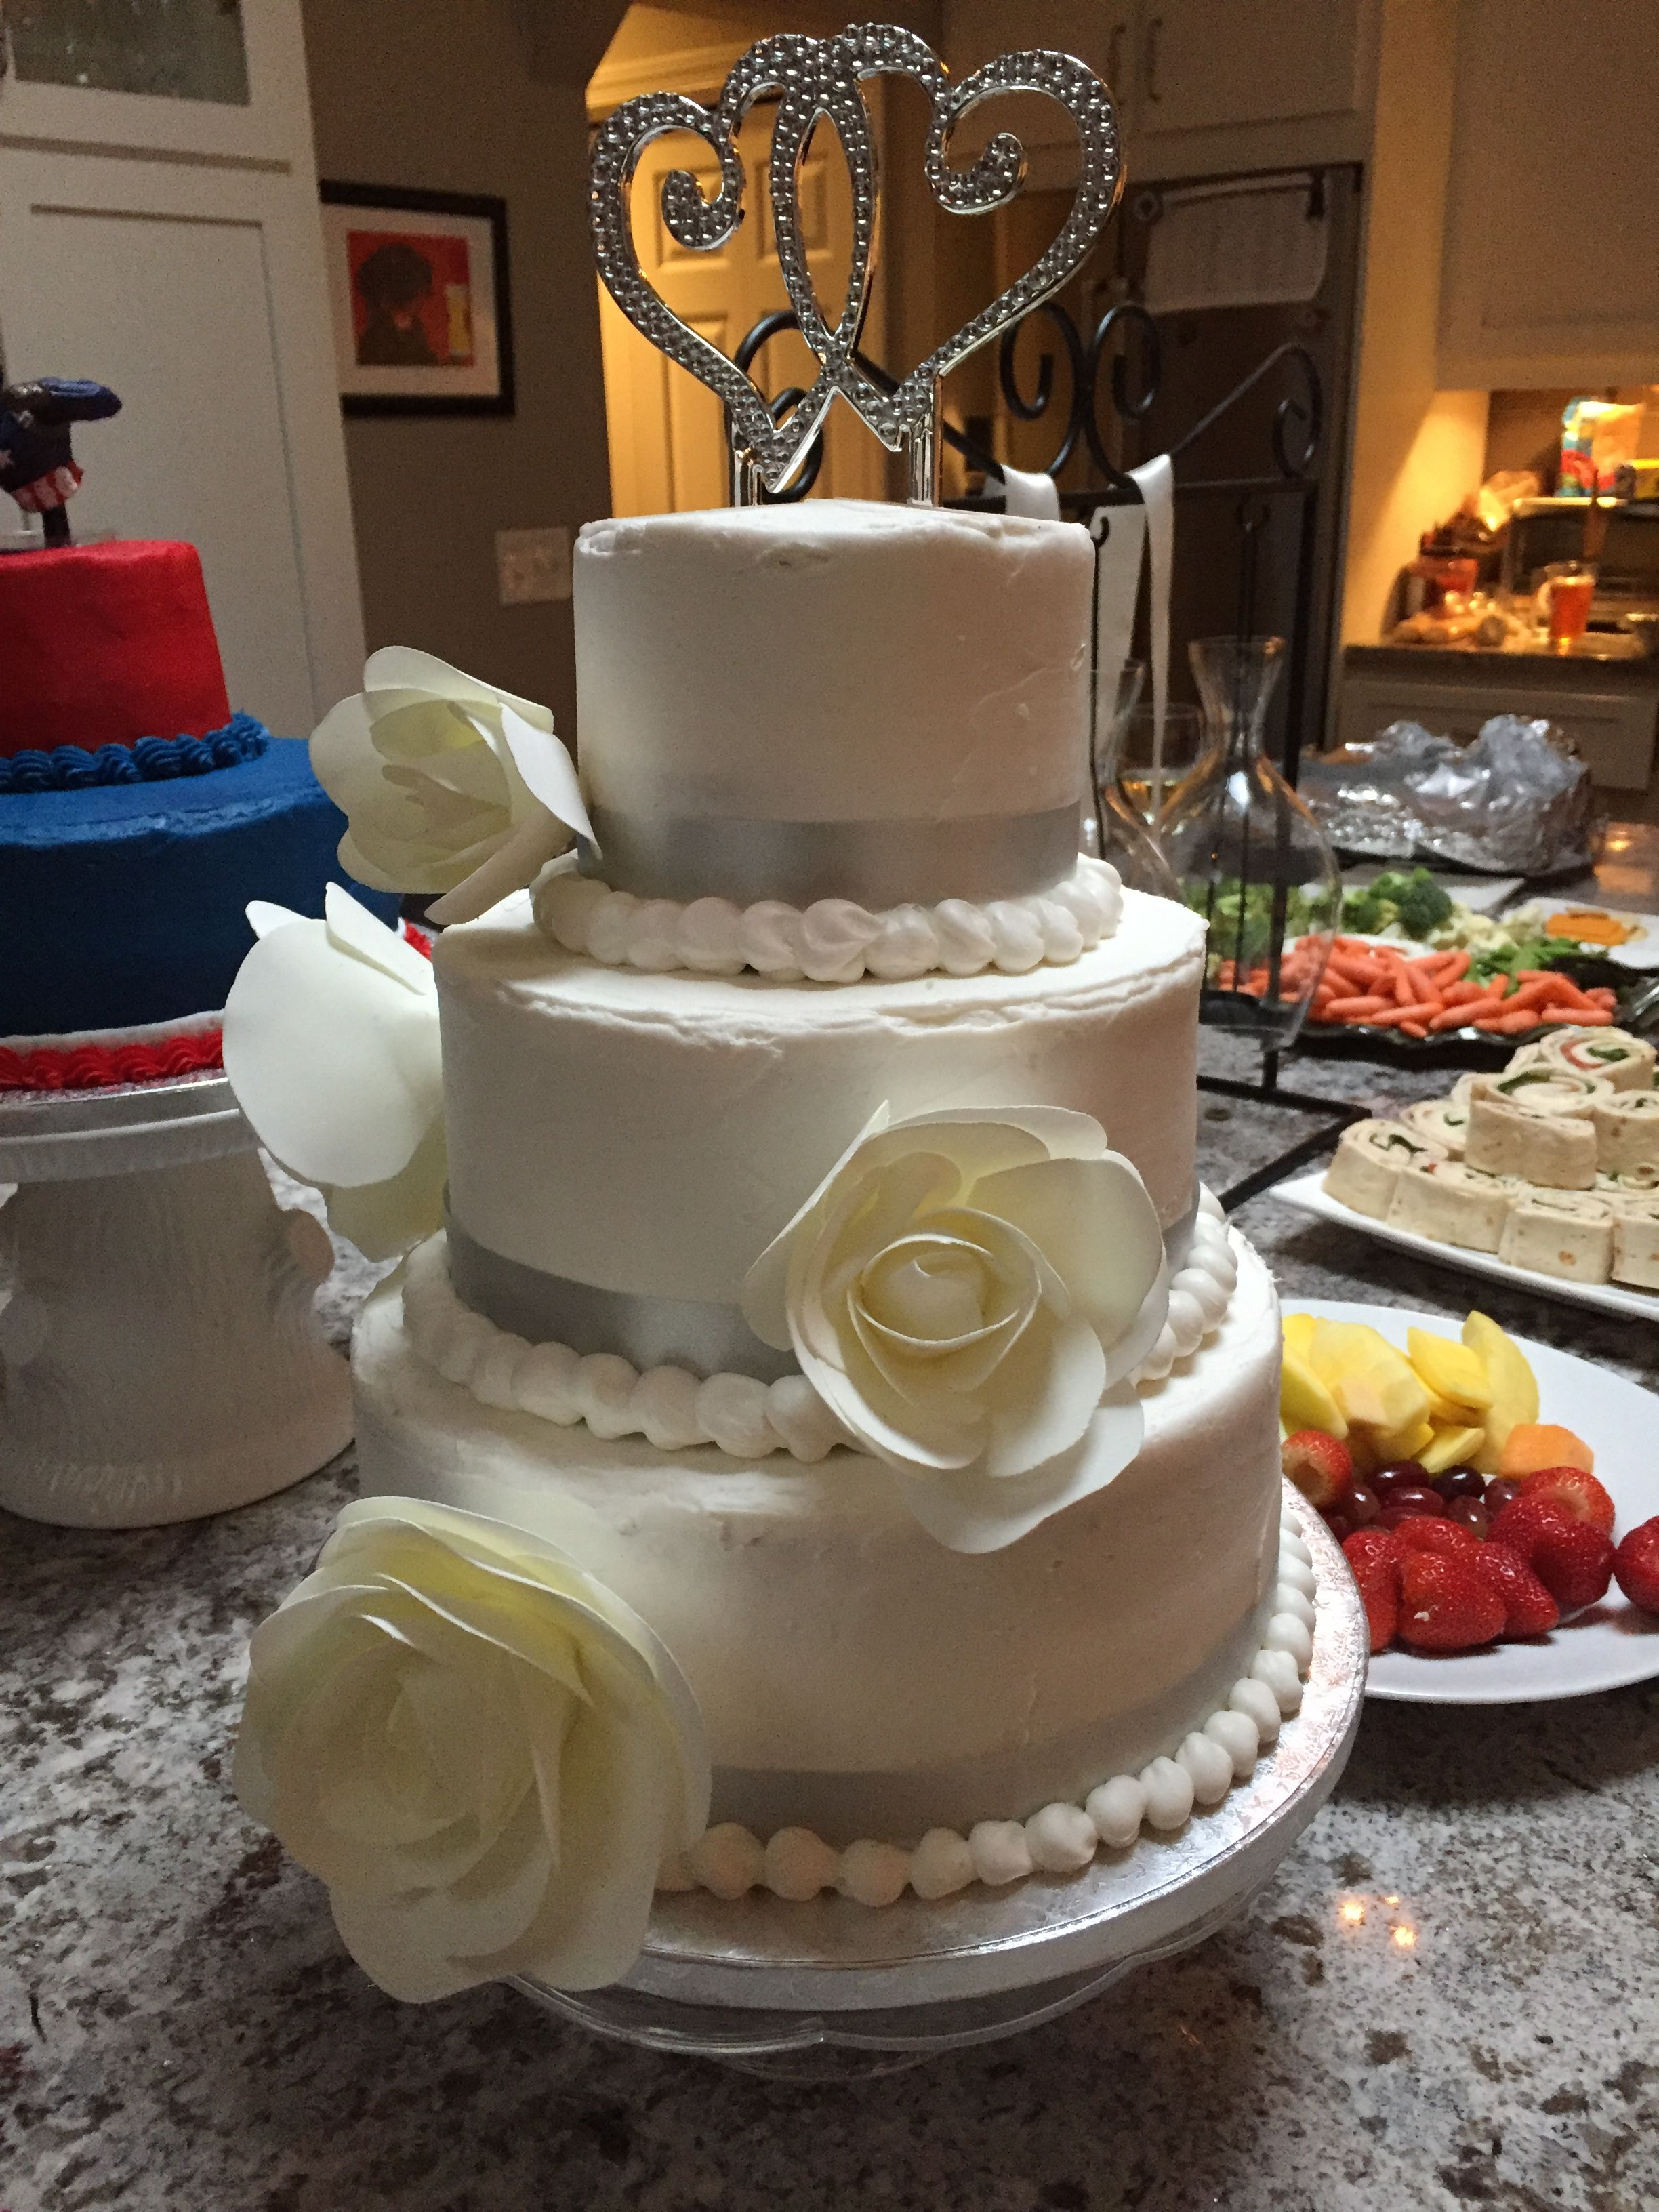 Jenni & Eli wedding cake - Sams club did a great job .  Sams club